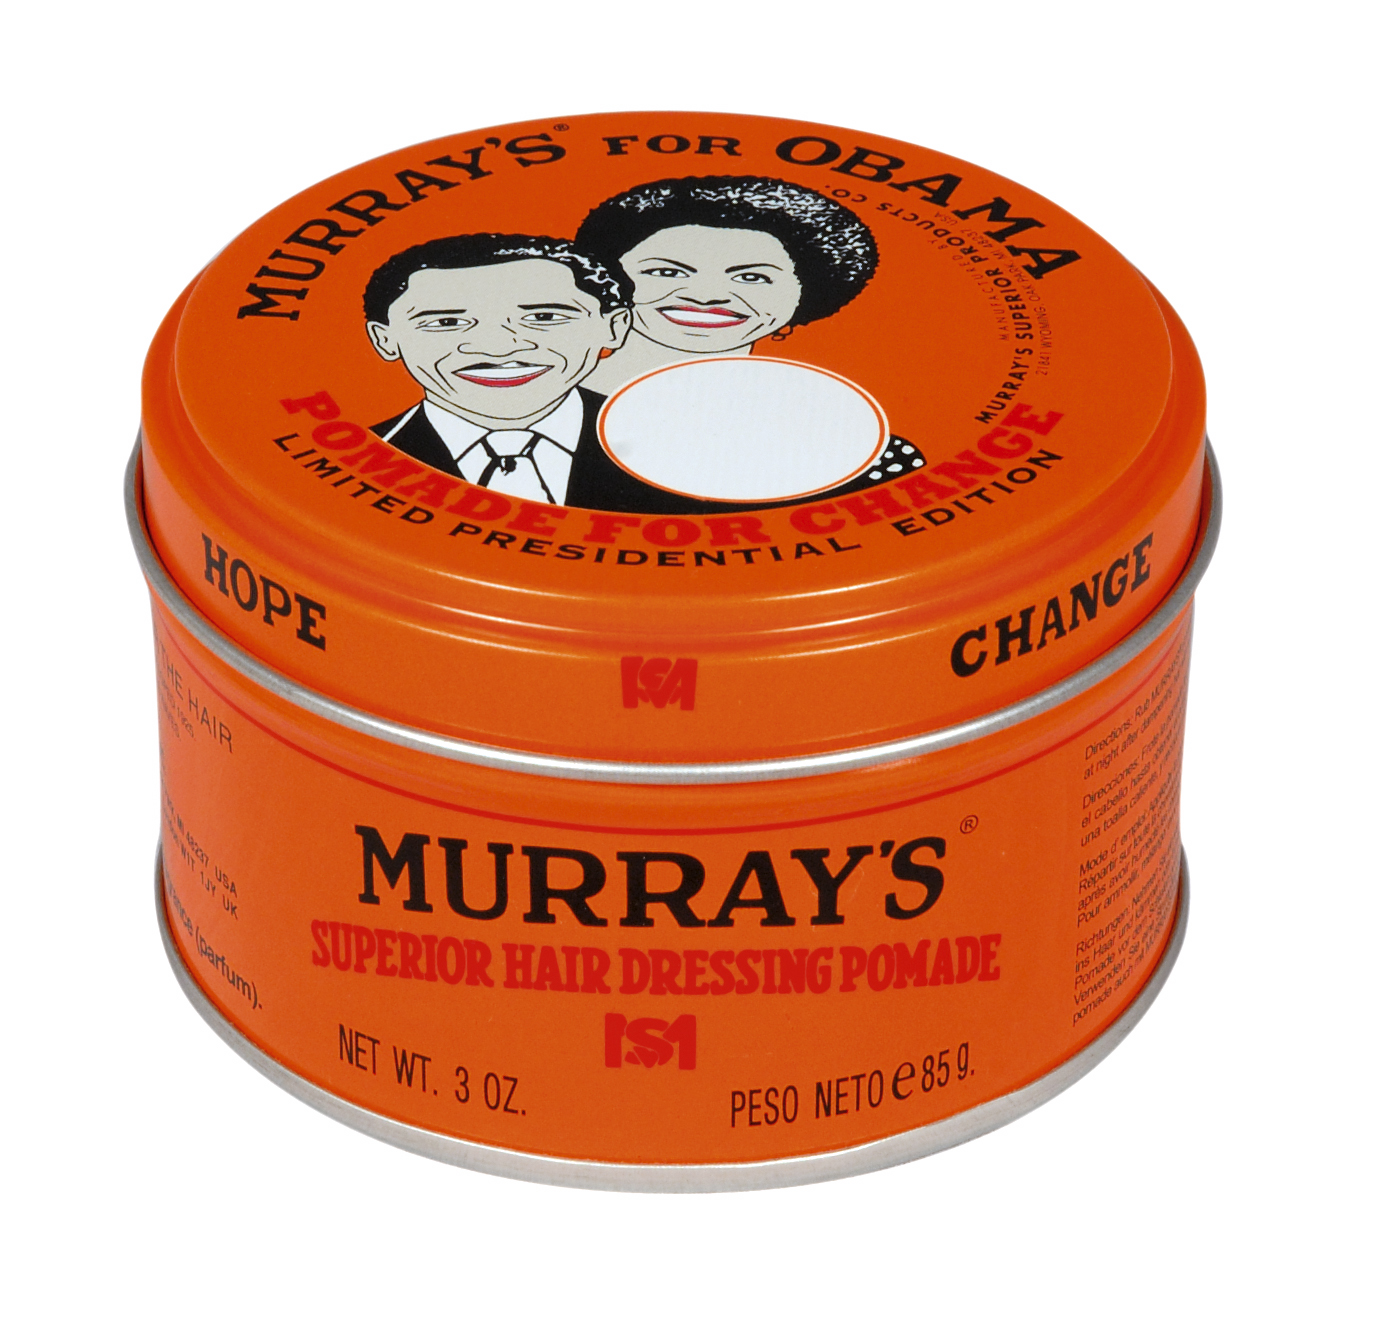 Murrays For Obama Available At Murrays4changecom 1 From Each Tin Murray Nunile Pomade Goes To A Charity That Will Be Chosen By The Community